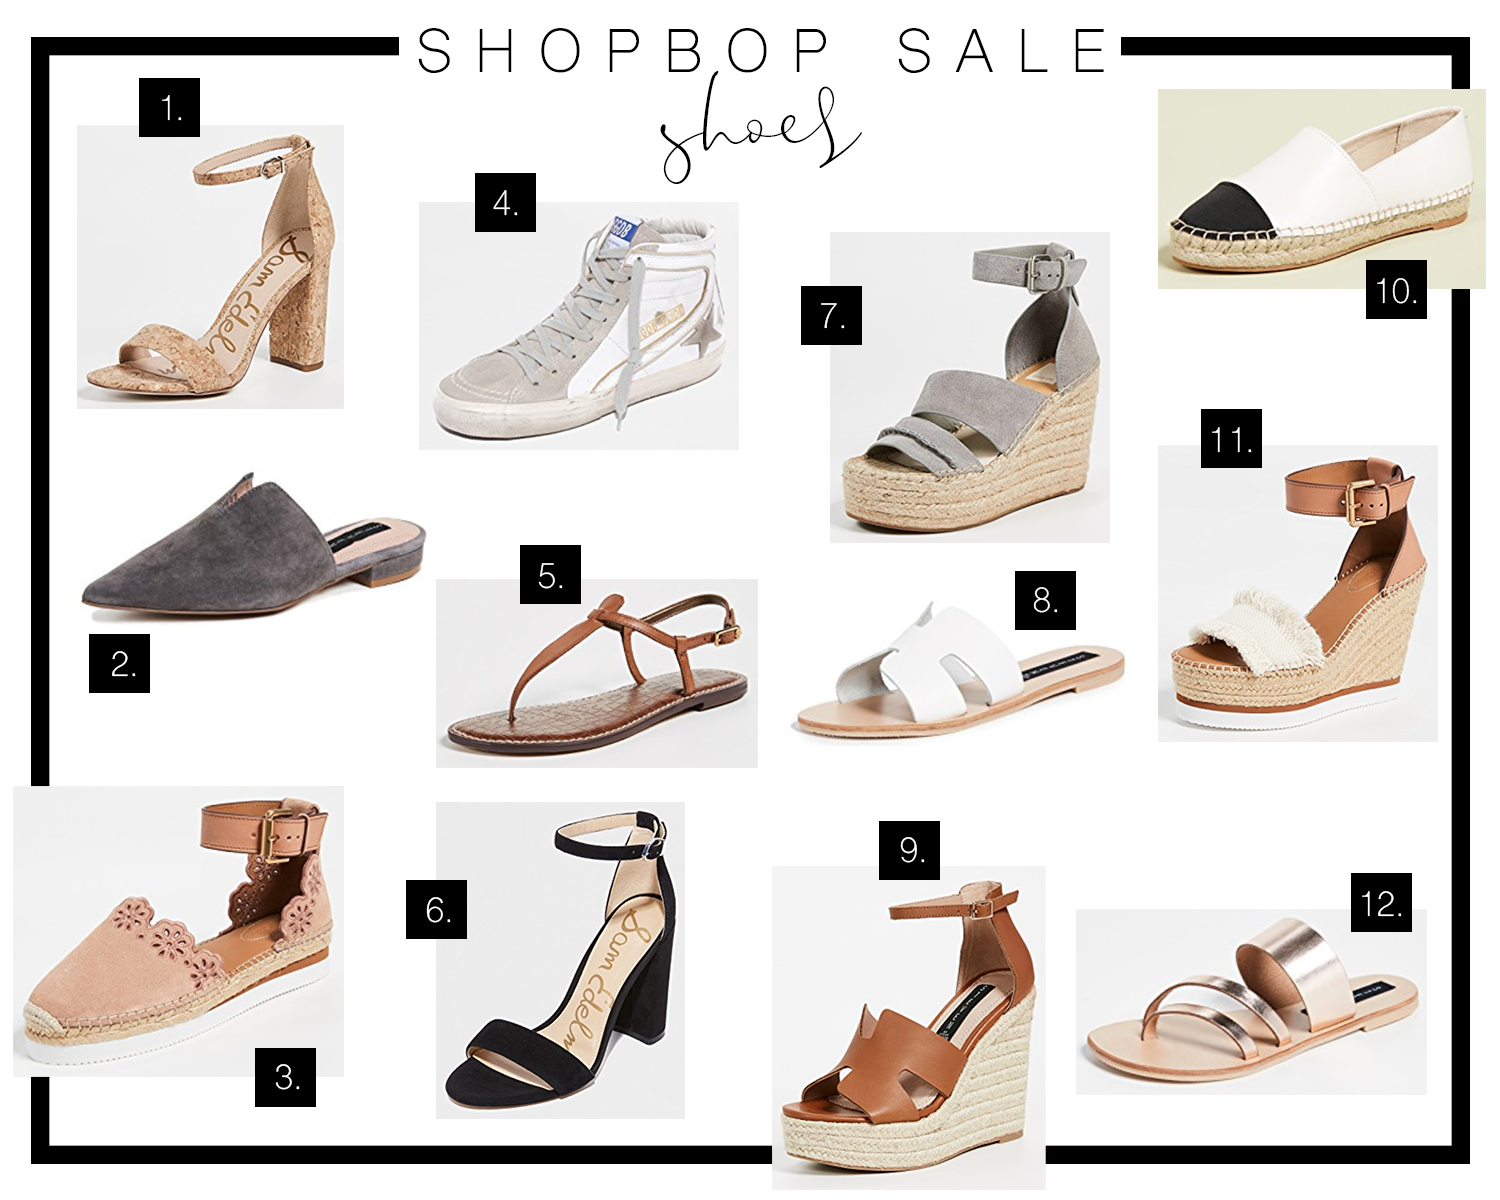 shopbop-sale-shoes.png